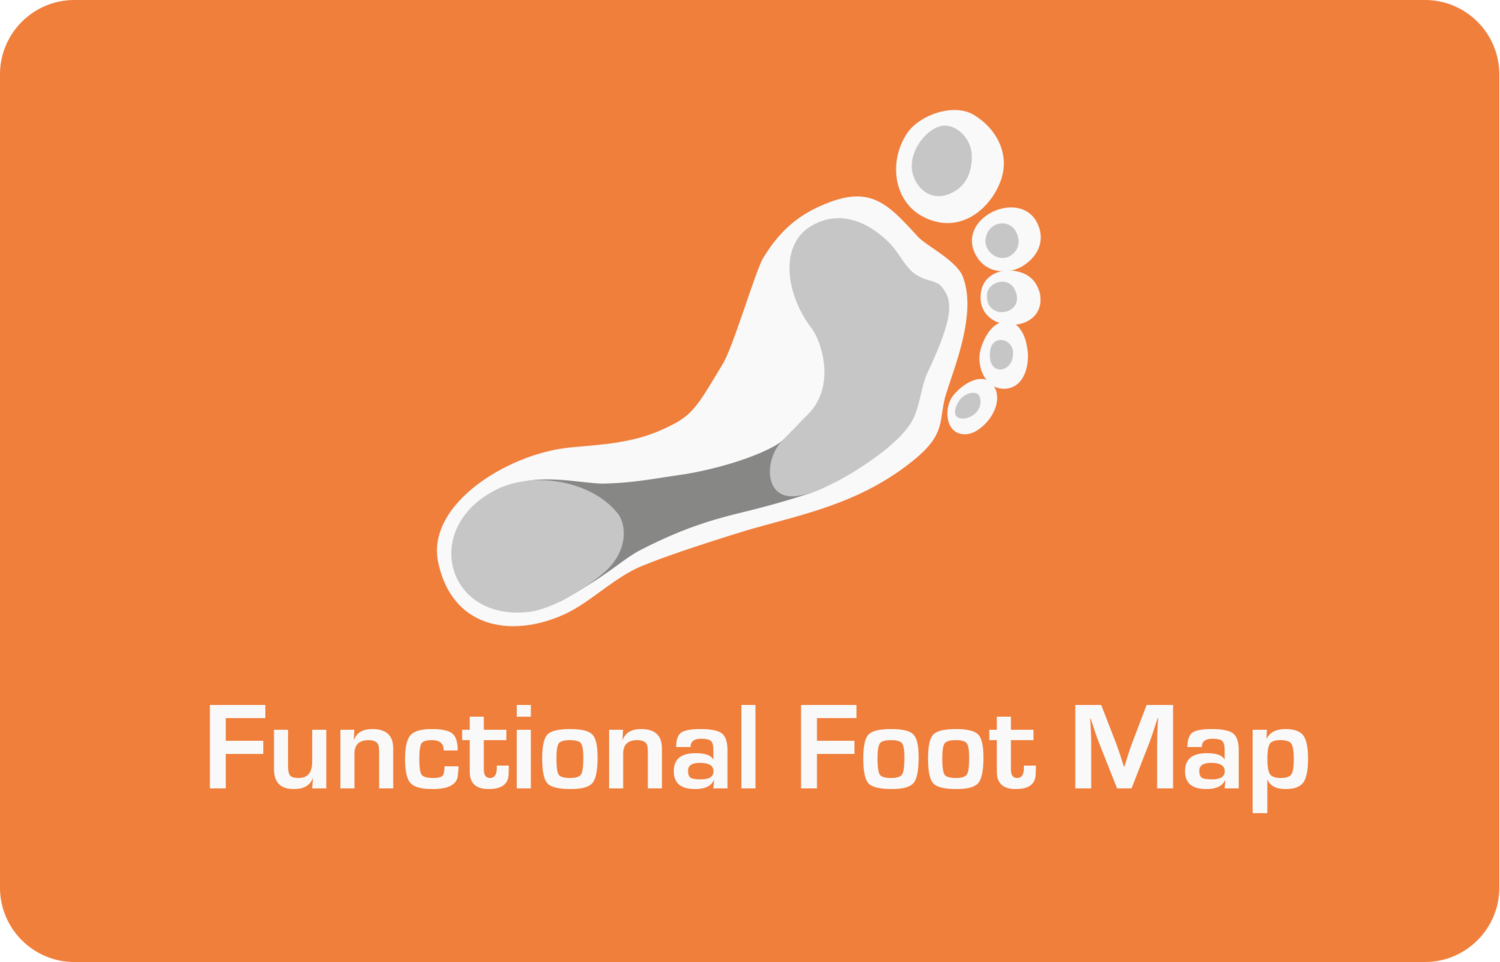 Functional Foot Map by Lee Saxby